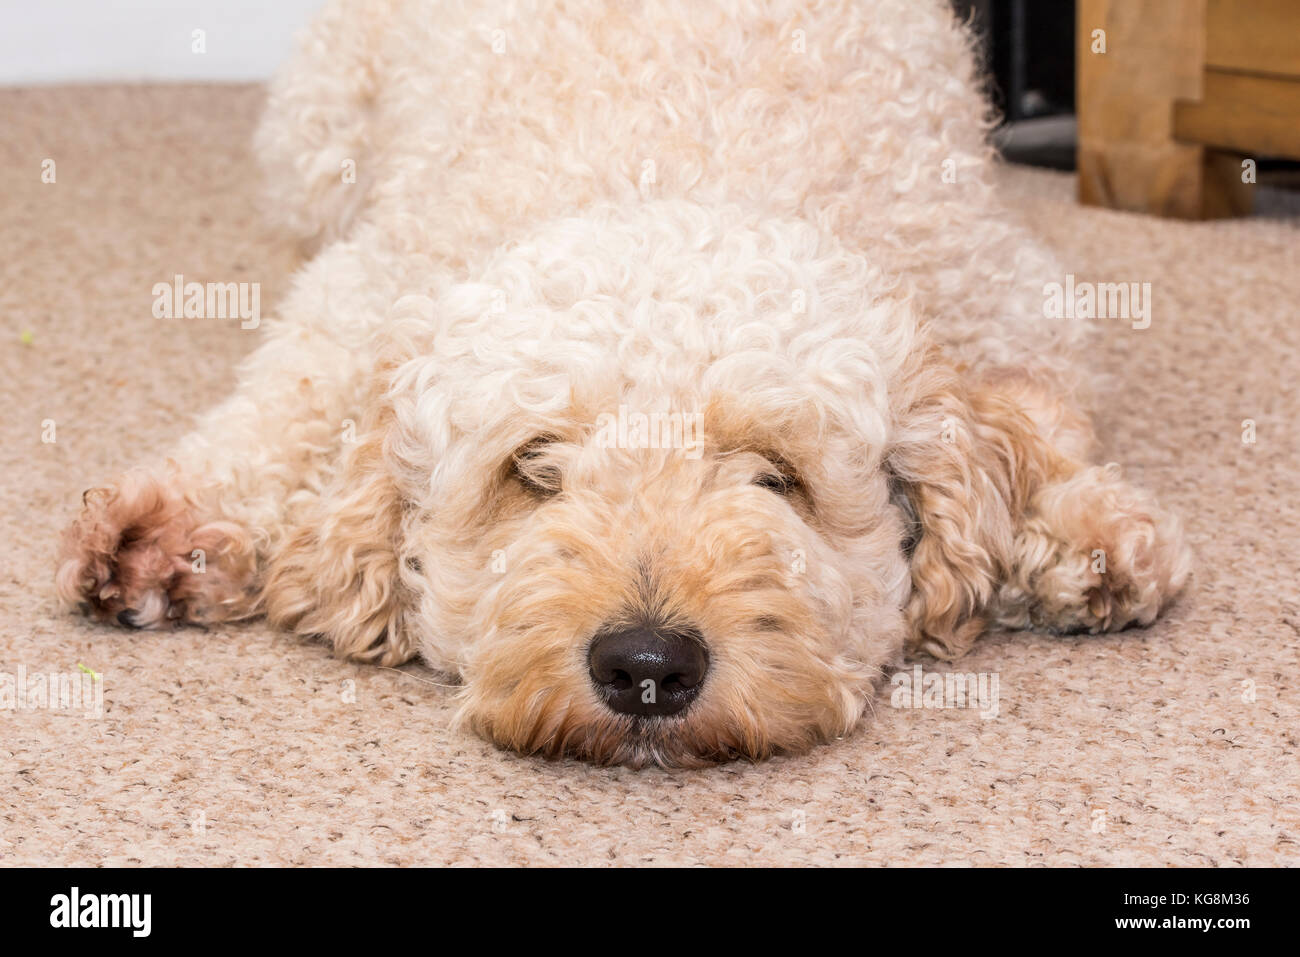 Curly haired Labradoodle lying flat out on the floor and looking towards the camera - Stock Image